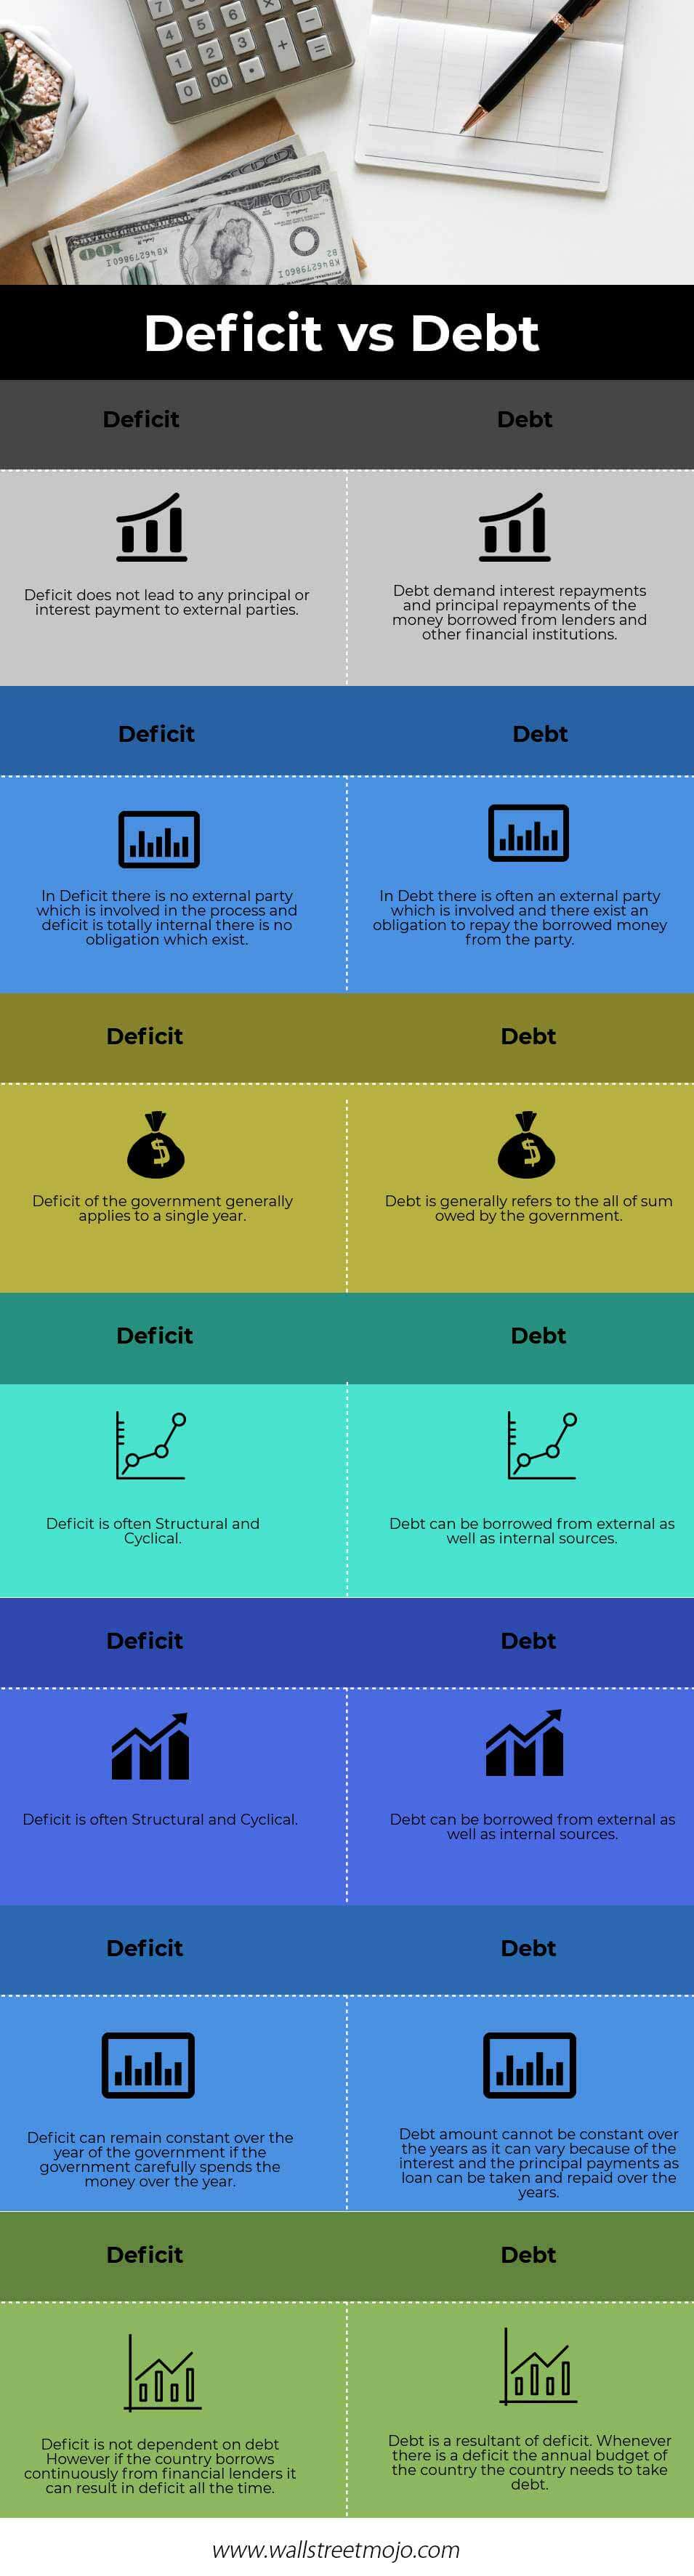 Deficit-vs-Debt Info